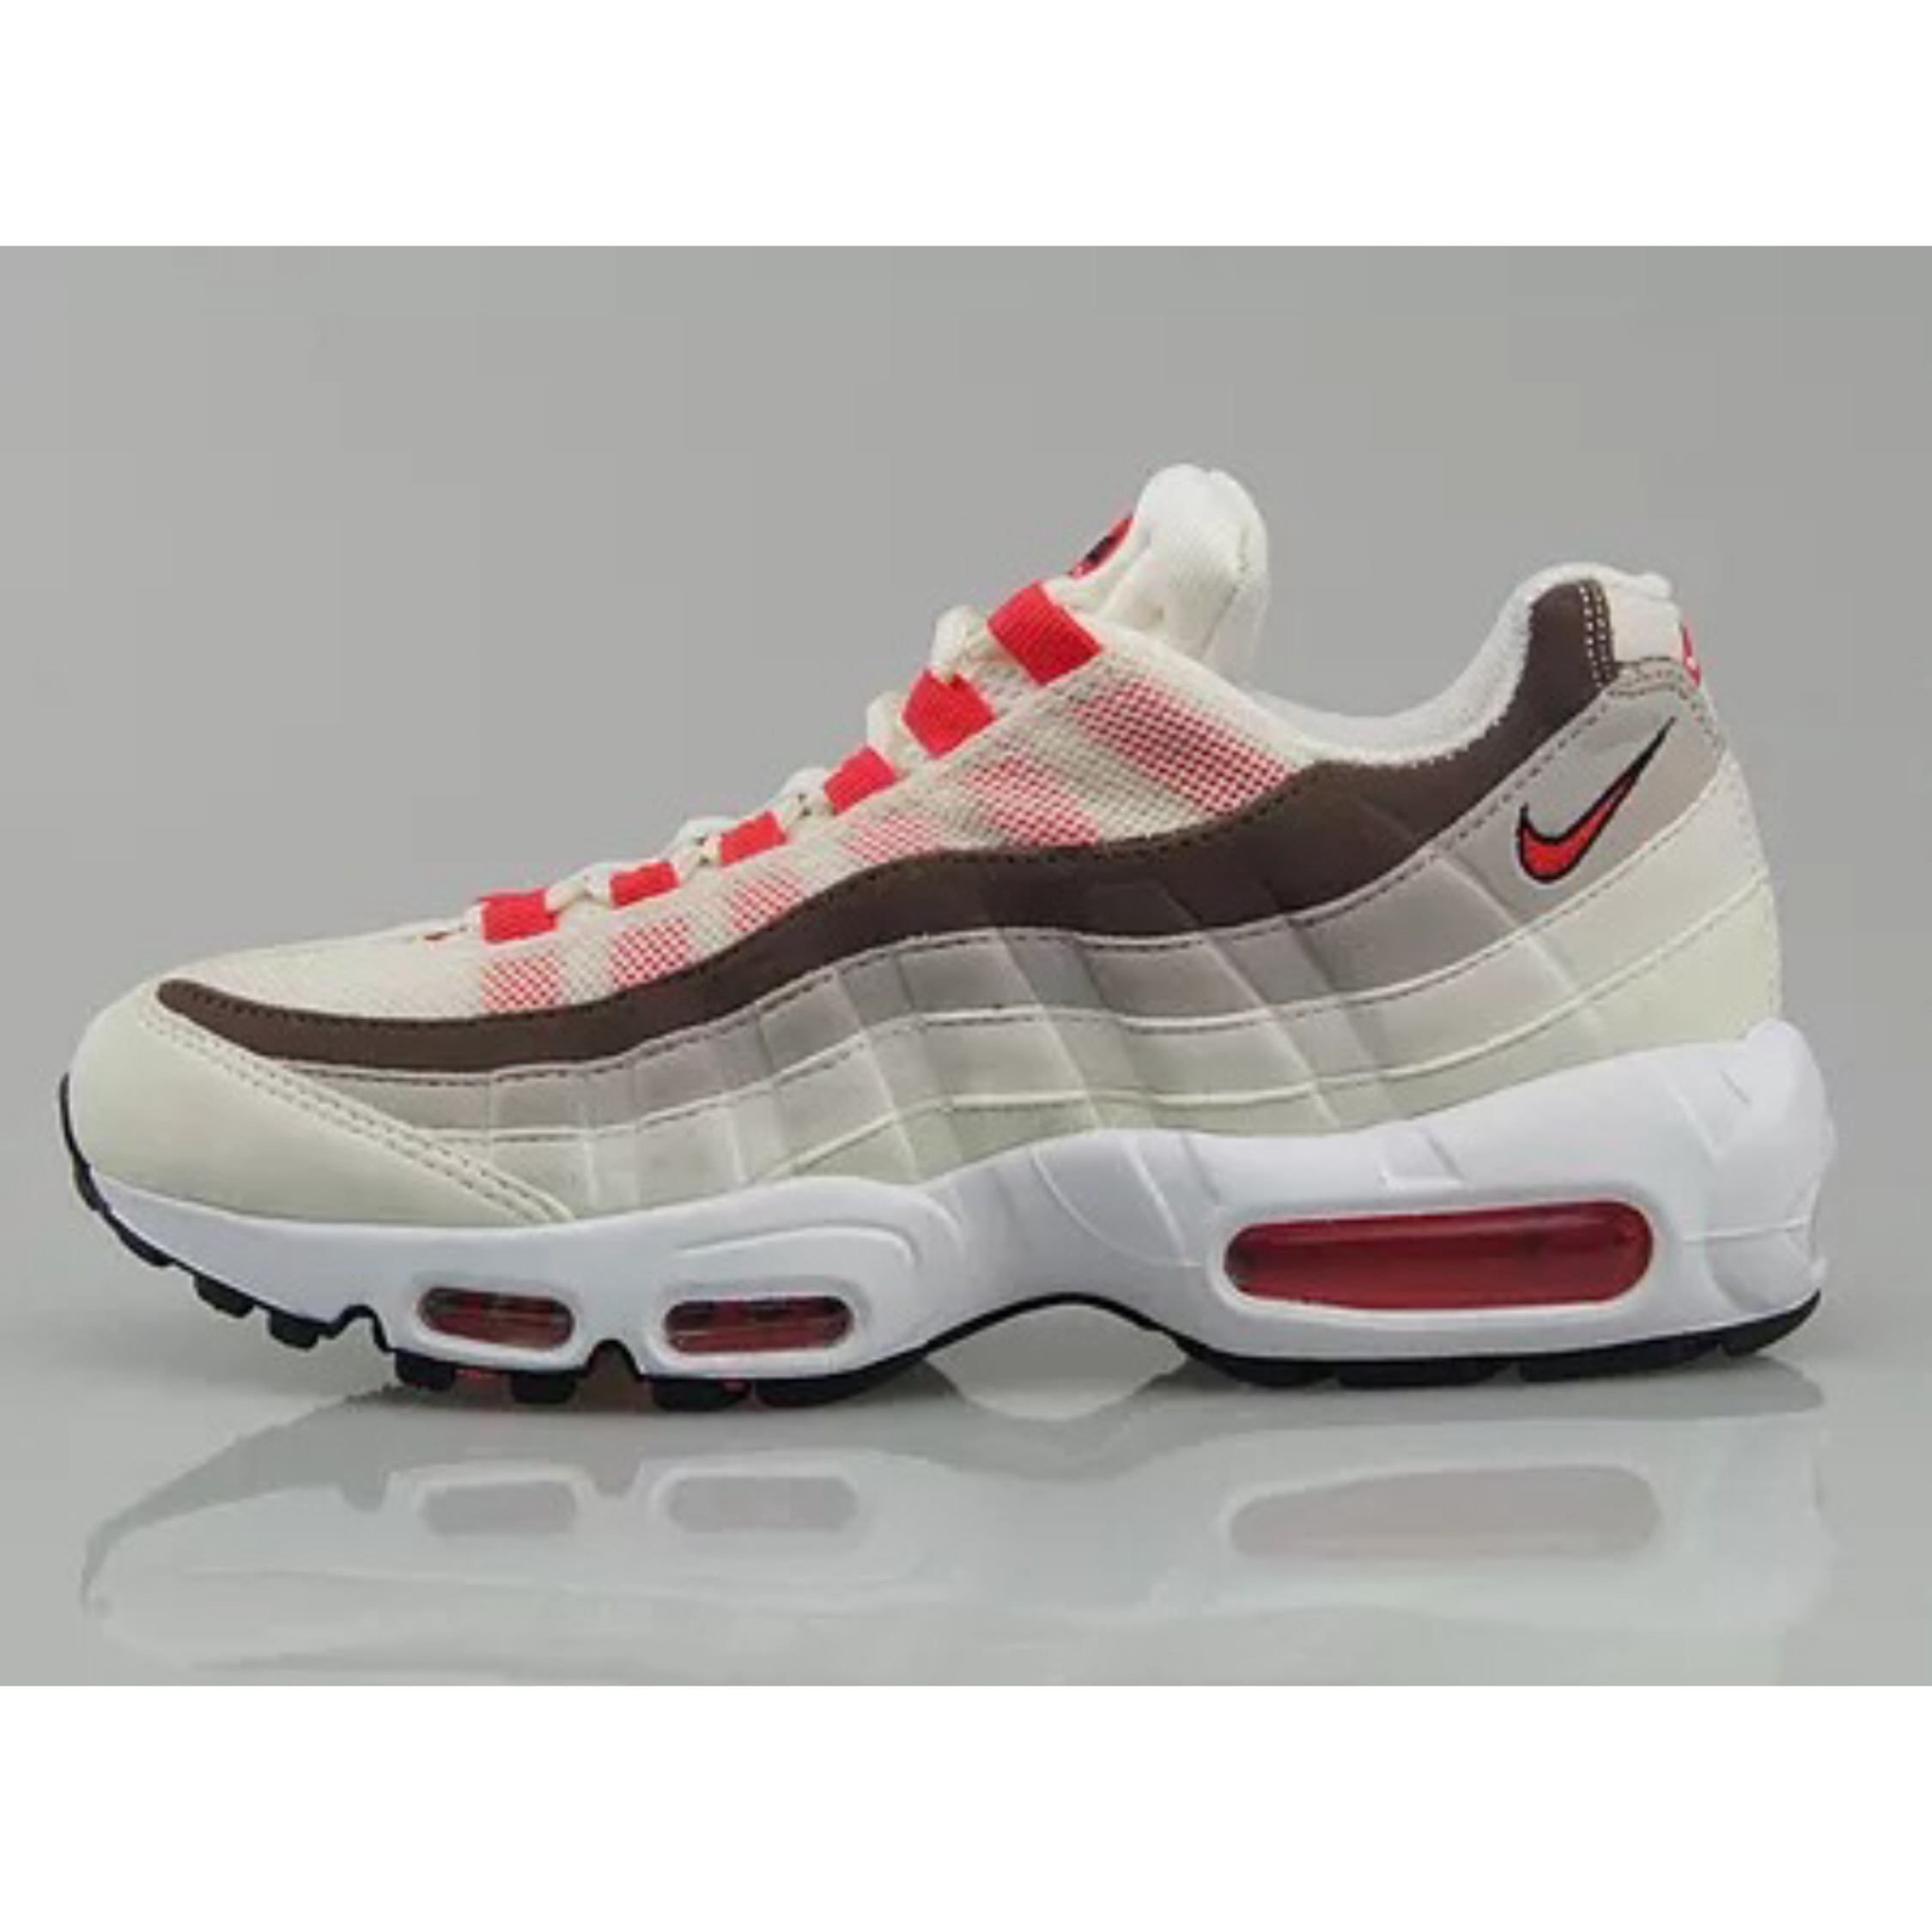 new arrival 6efe3 c8f6e Nike Air Max 95